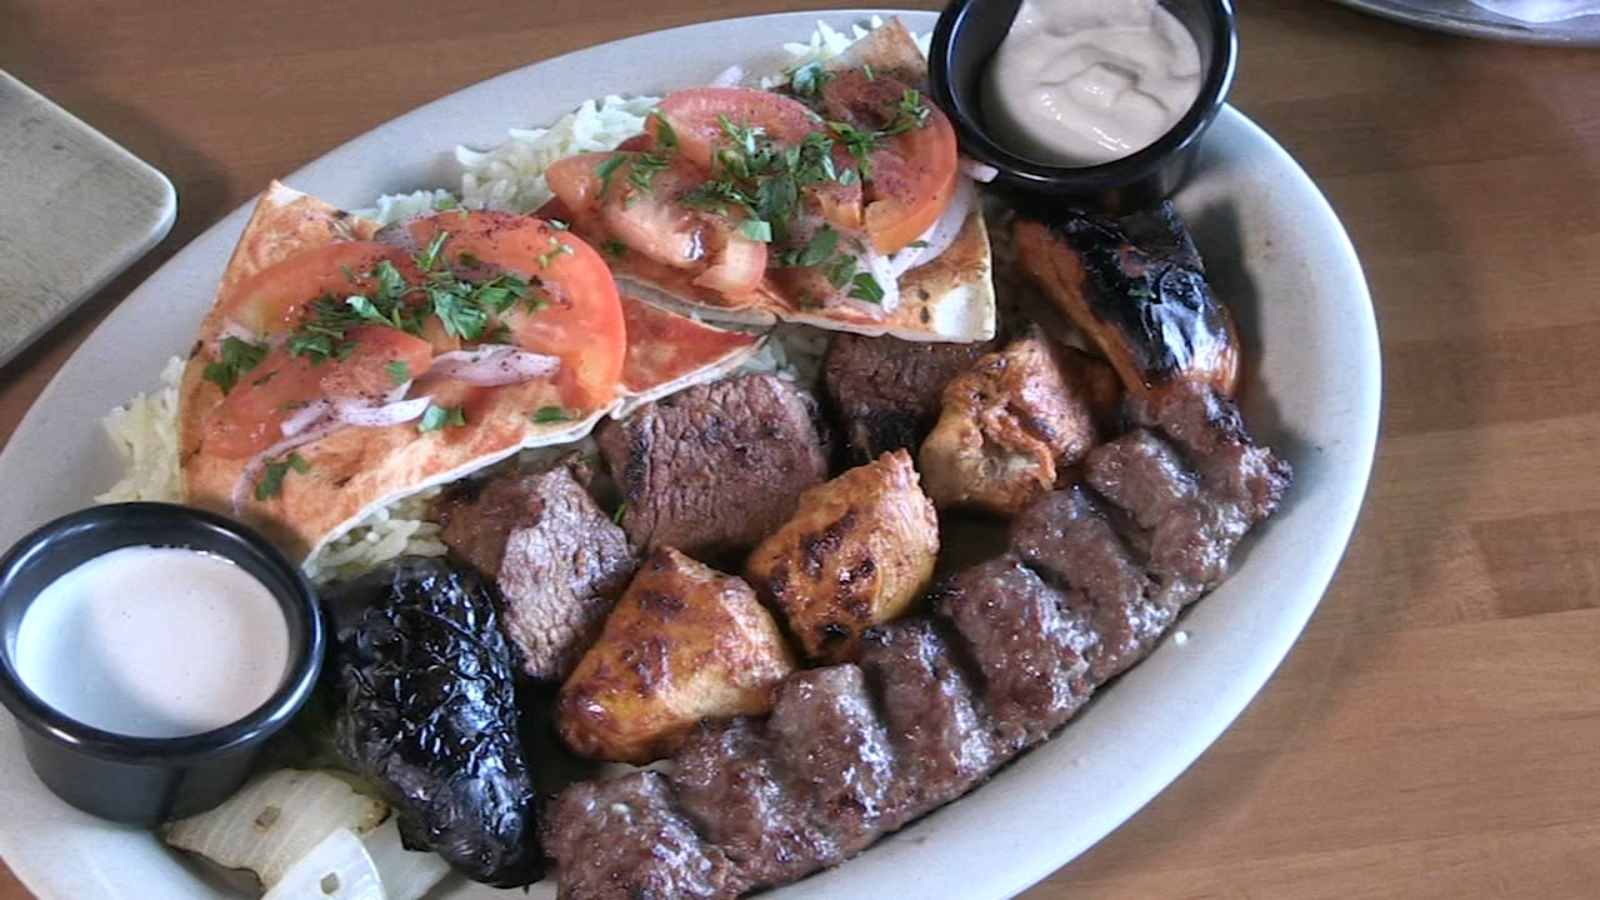 Libanais restaurant in Lincolnwood brings flavors of home to Lebanese ex-pats